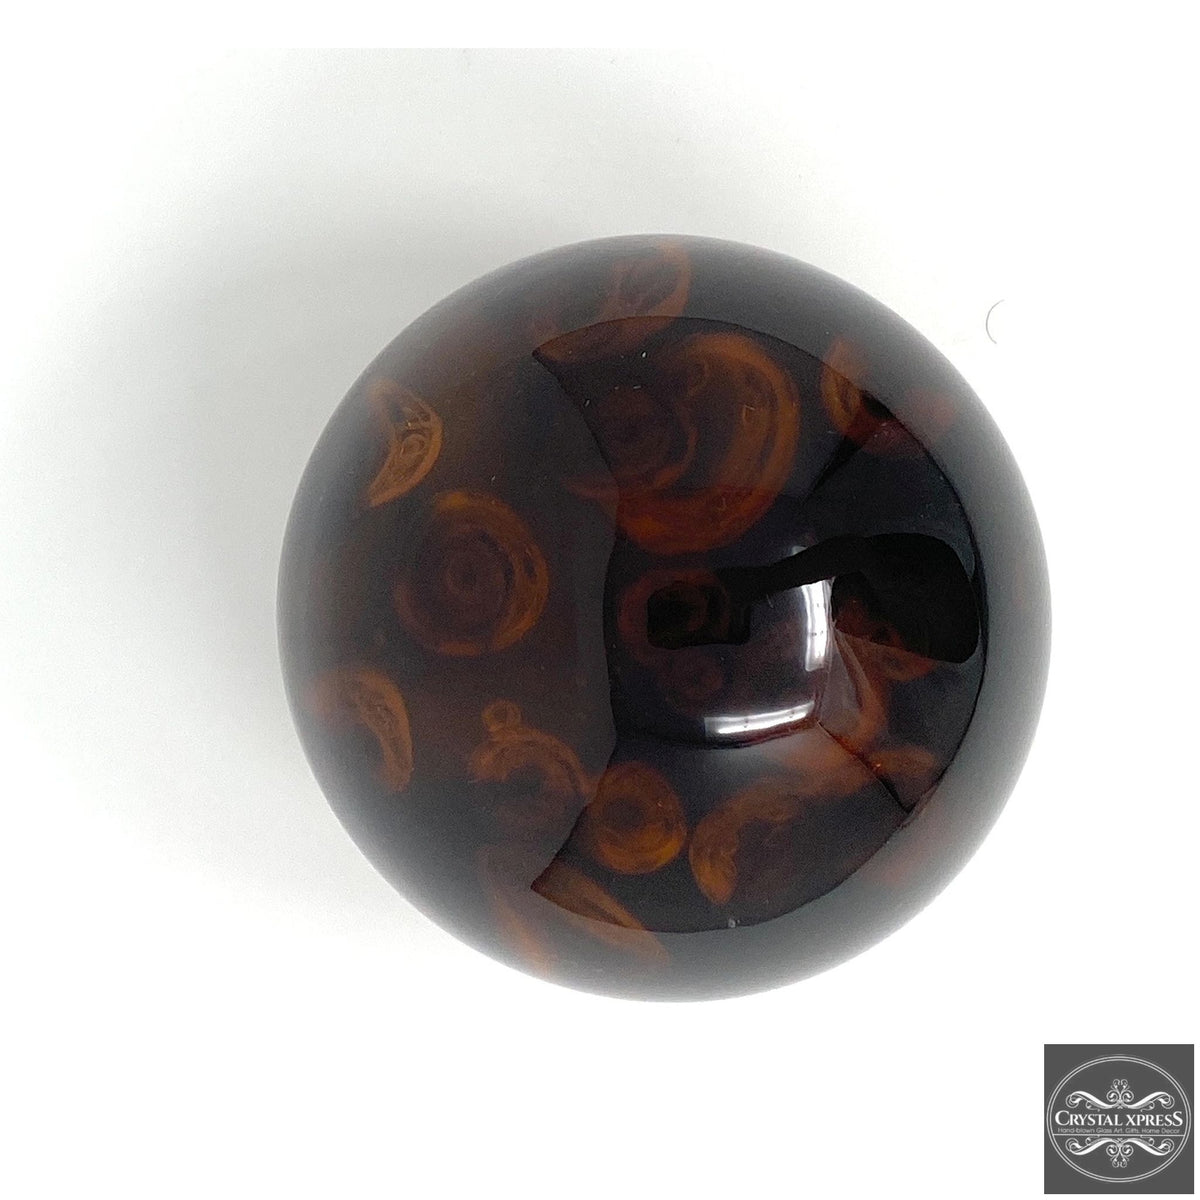 Glass Amber Paperweight 5.5 inch DiameterCrystal Xpress